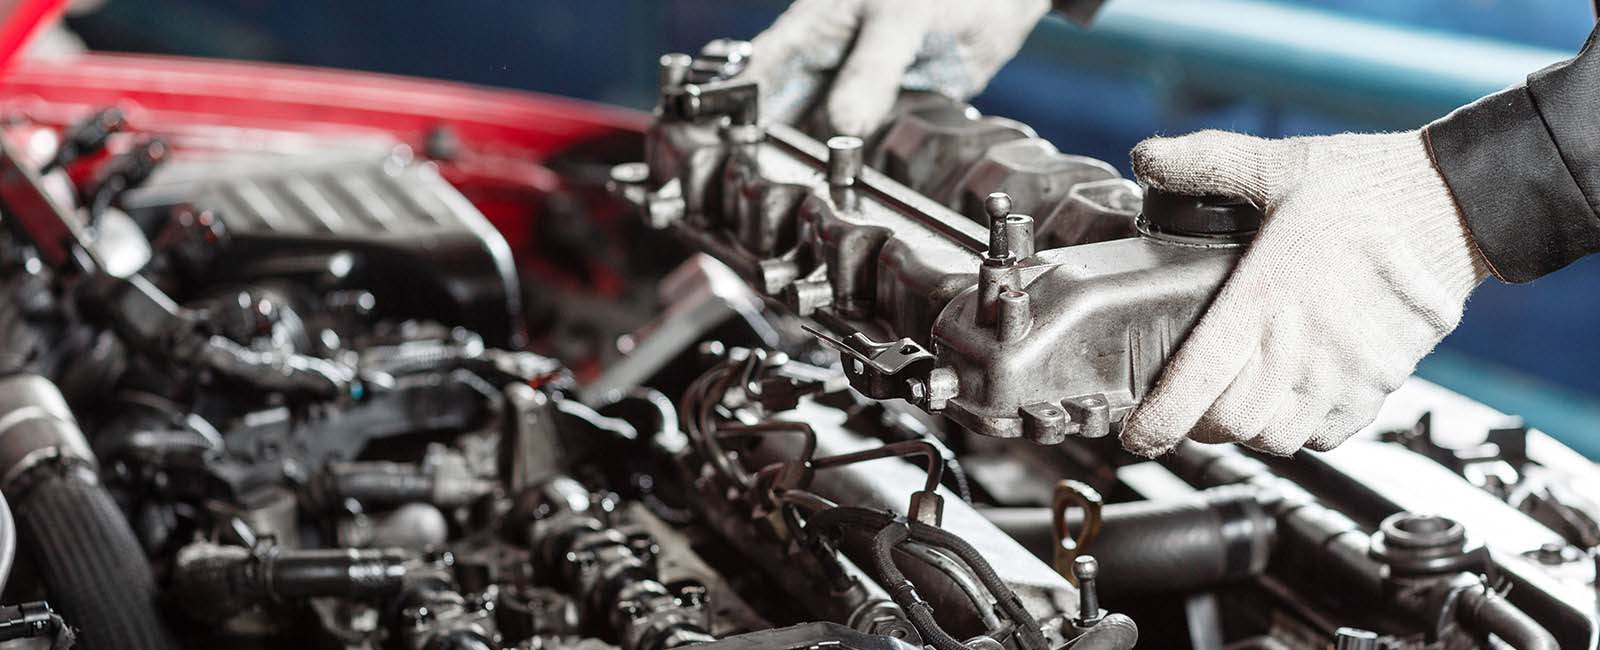 Thunder Bay And Nipigon S Trusted Source For Superior Auto Repair Service